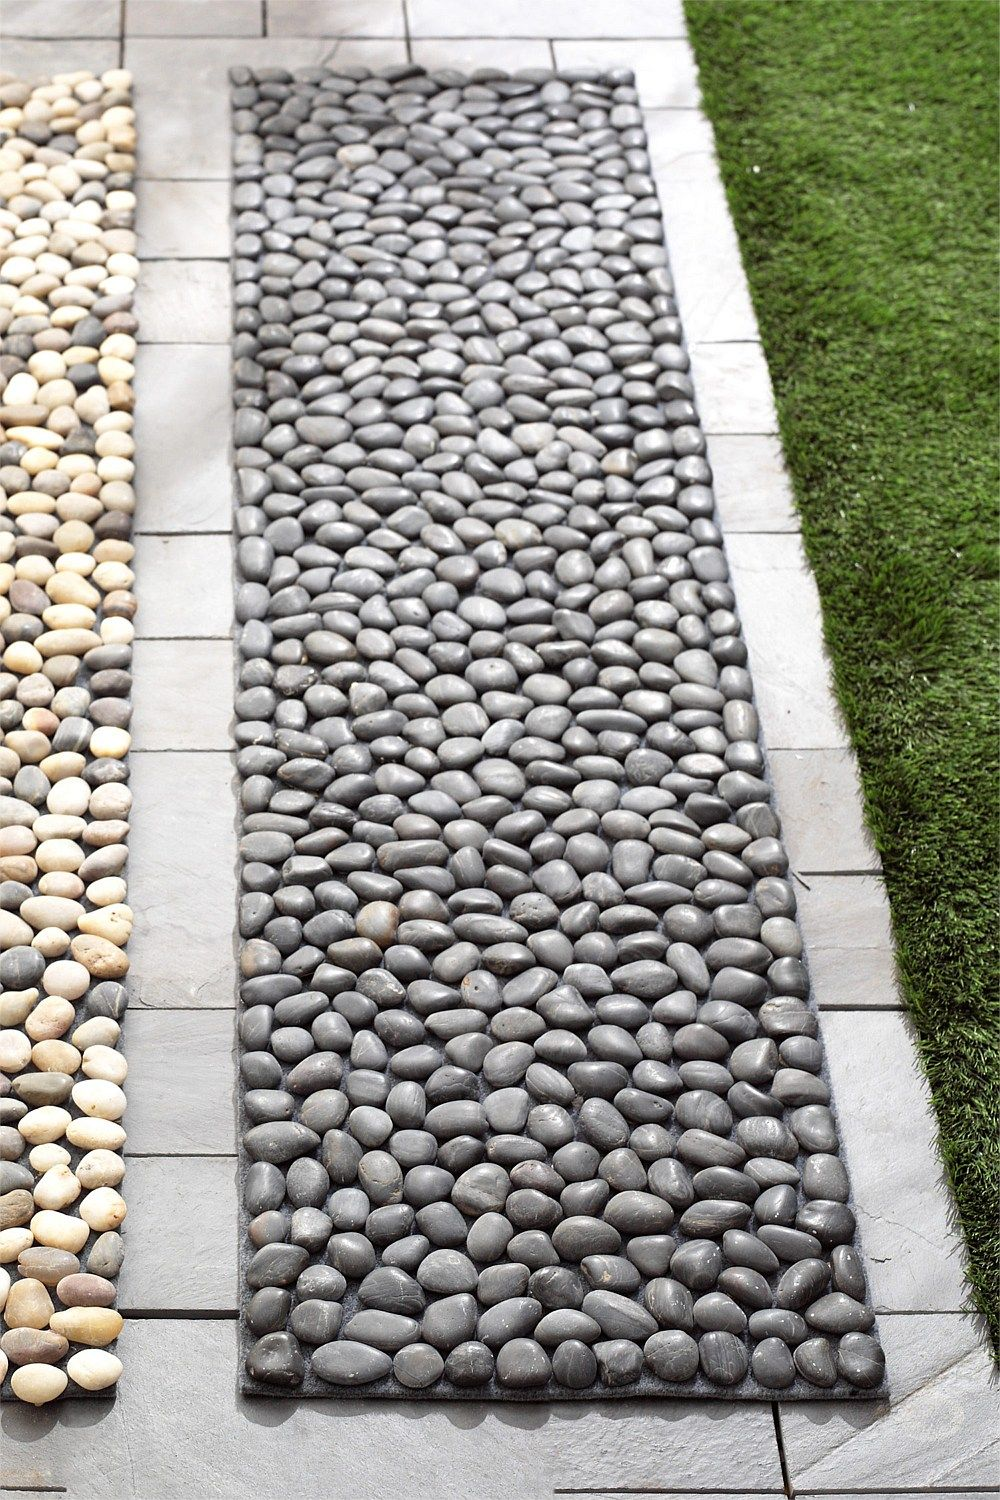 10 DIY Awesome and Interesting Ideas For Great Gardens 2 | Yards ...